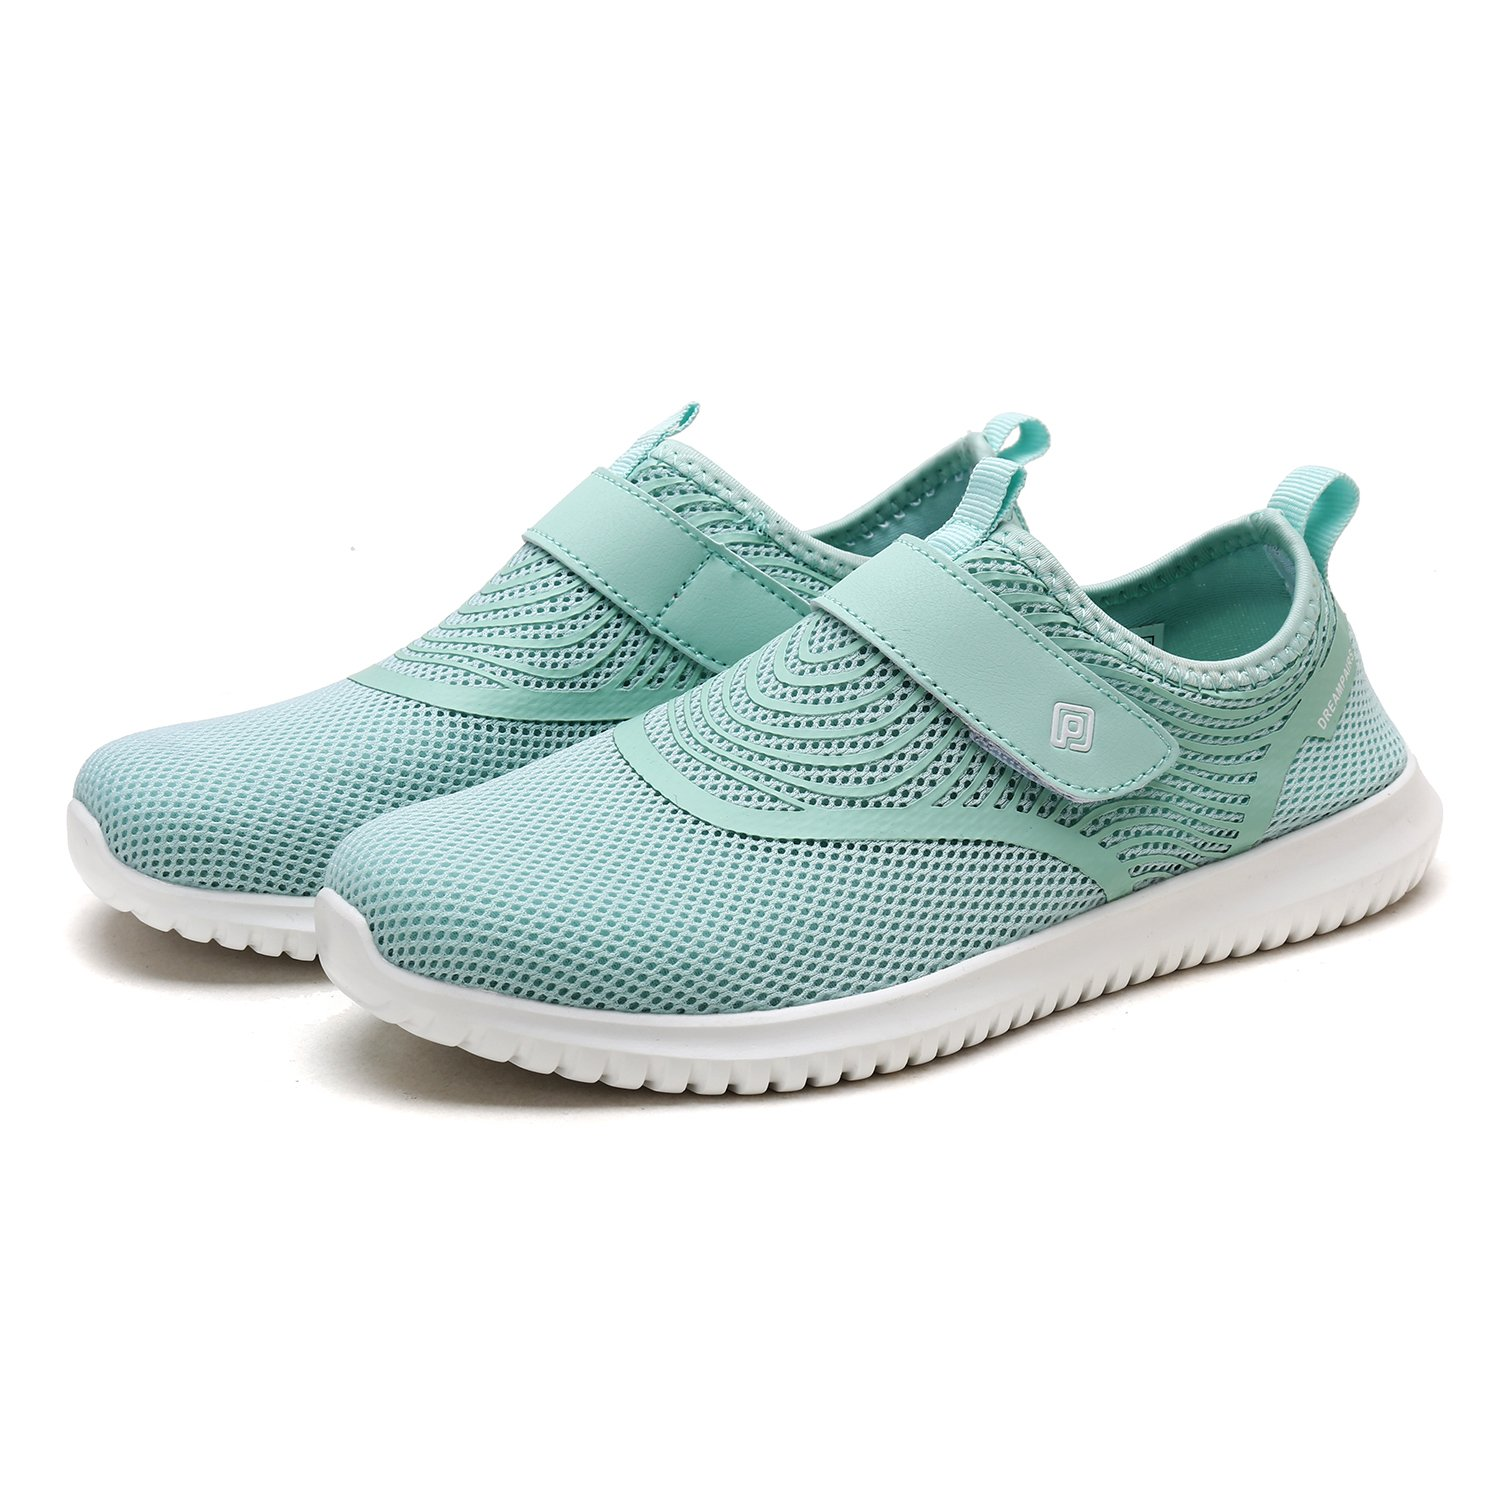 DREAM PAIRS Quick-Dry Casual Water Shoes Sports Walking Casual Quick-Dry Sneakers for Women B07888QGRB 10 M US|Lt.green edc135